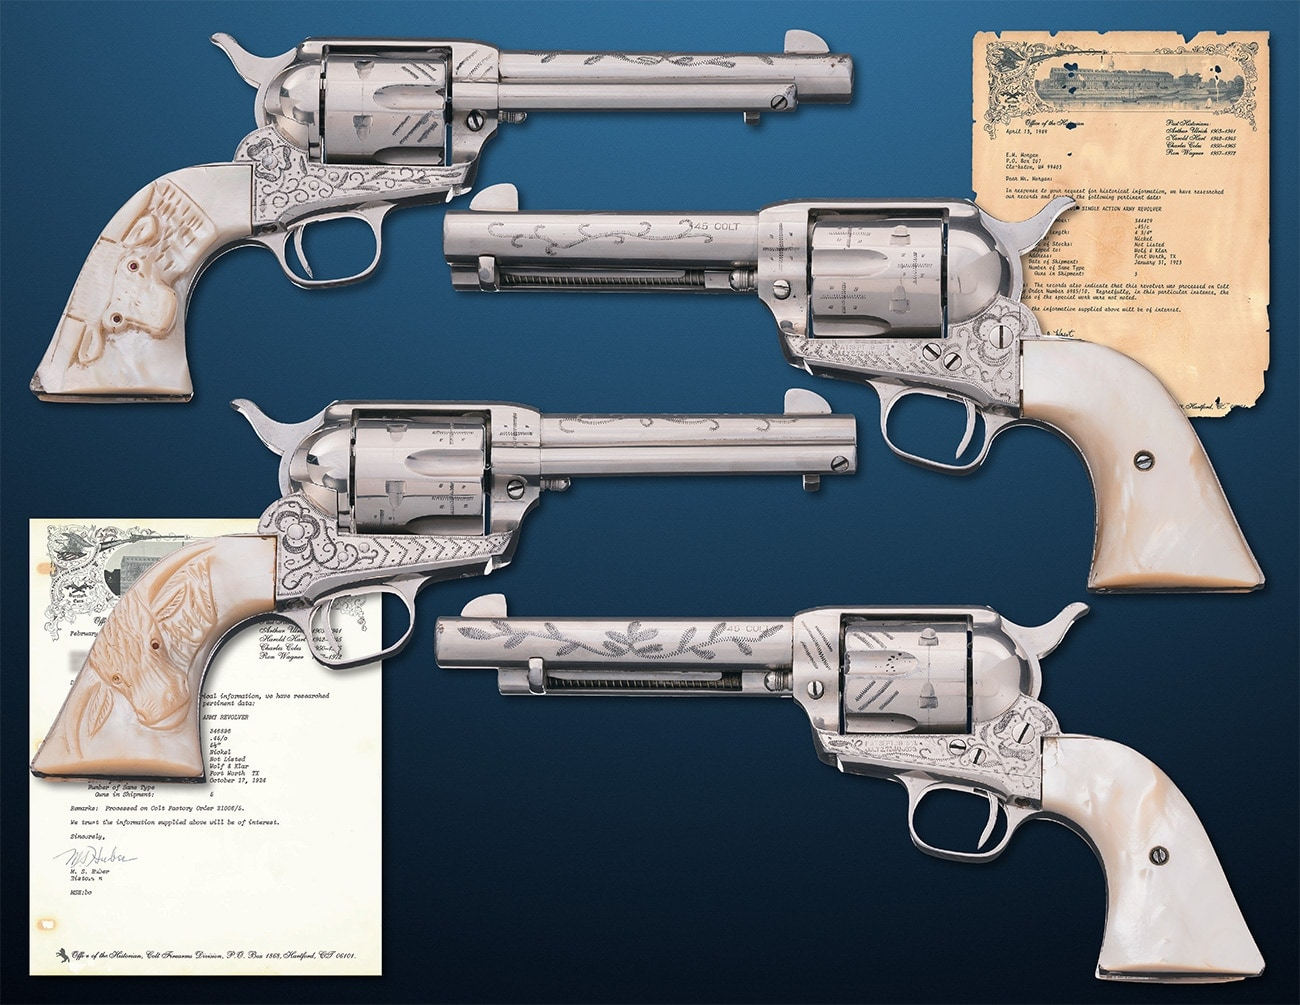 This pair of Wolf & Klar Engraved Colt Single Action Army revolvers dates from 1924 and the pearl grips include a carved steer head with ruby red eyes on the right side. $14,000 - $22,500. If you are just looking for one, RIA has a 1929 single for about half the price. https://www.rockislandauction.com/detail/71/1228/wolf-and-klar-engraved-nickel-plated-colt-single-action-army#detail